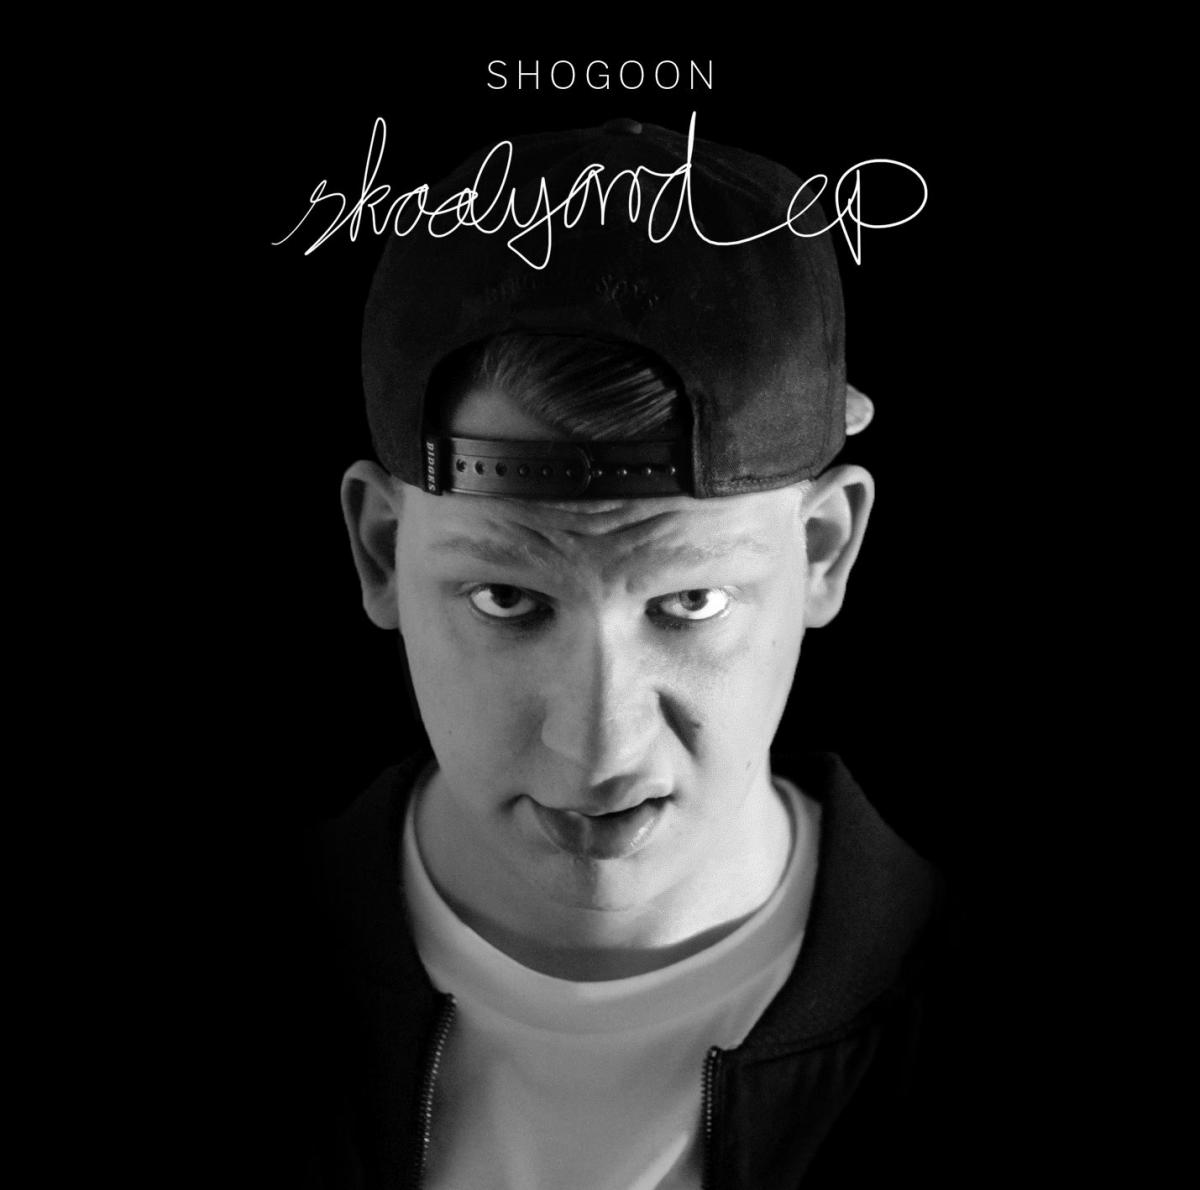 Upcoming: shogoon - Skoolyard EP (OUT NOW)